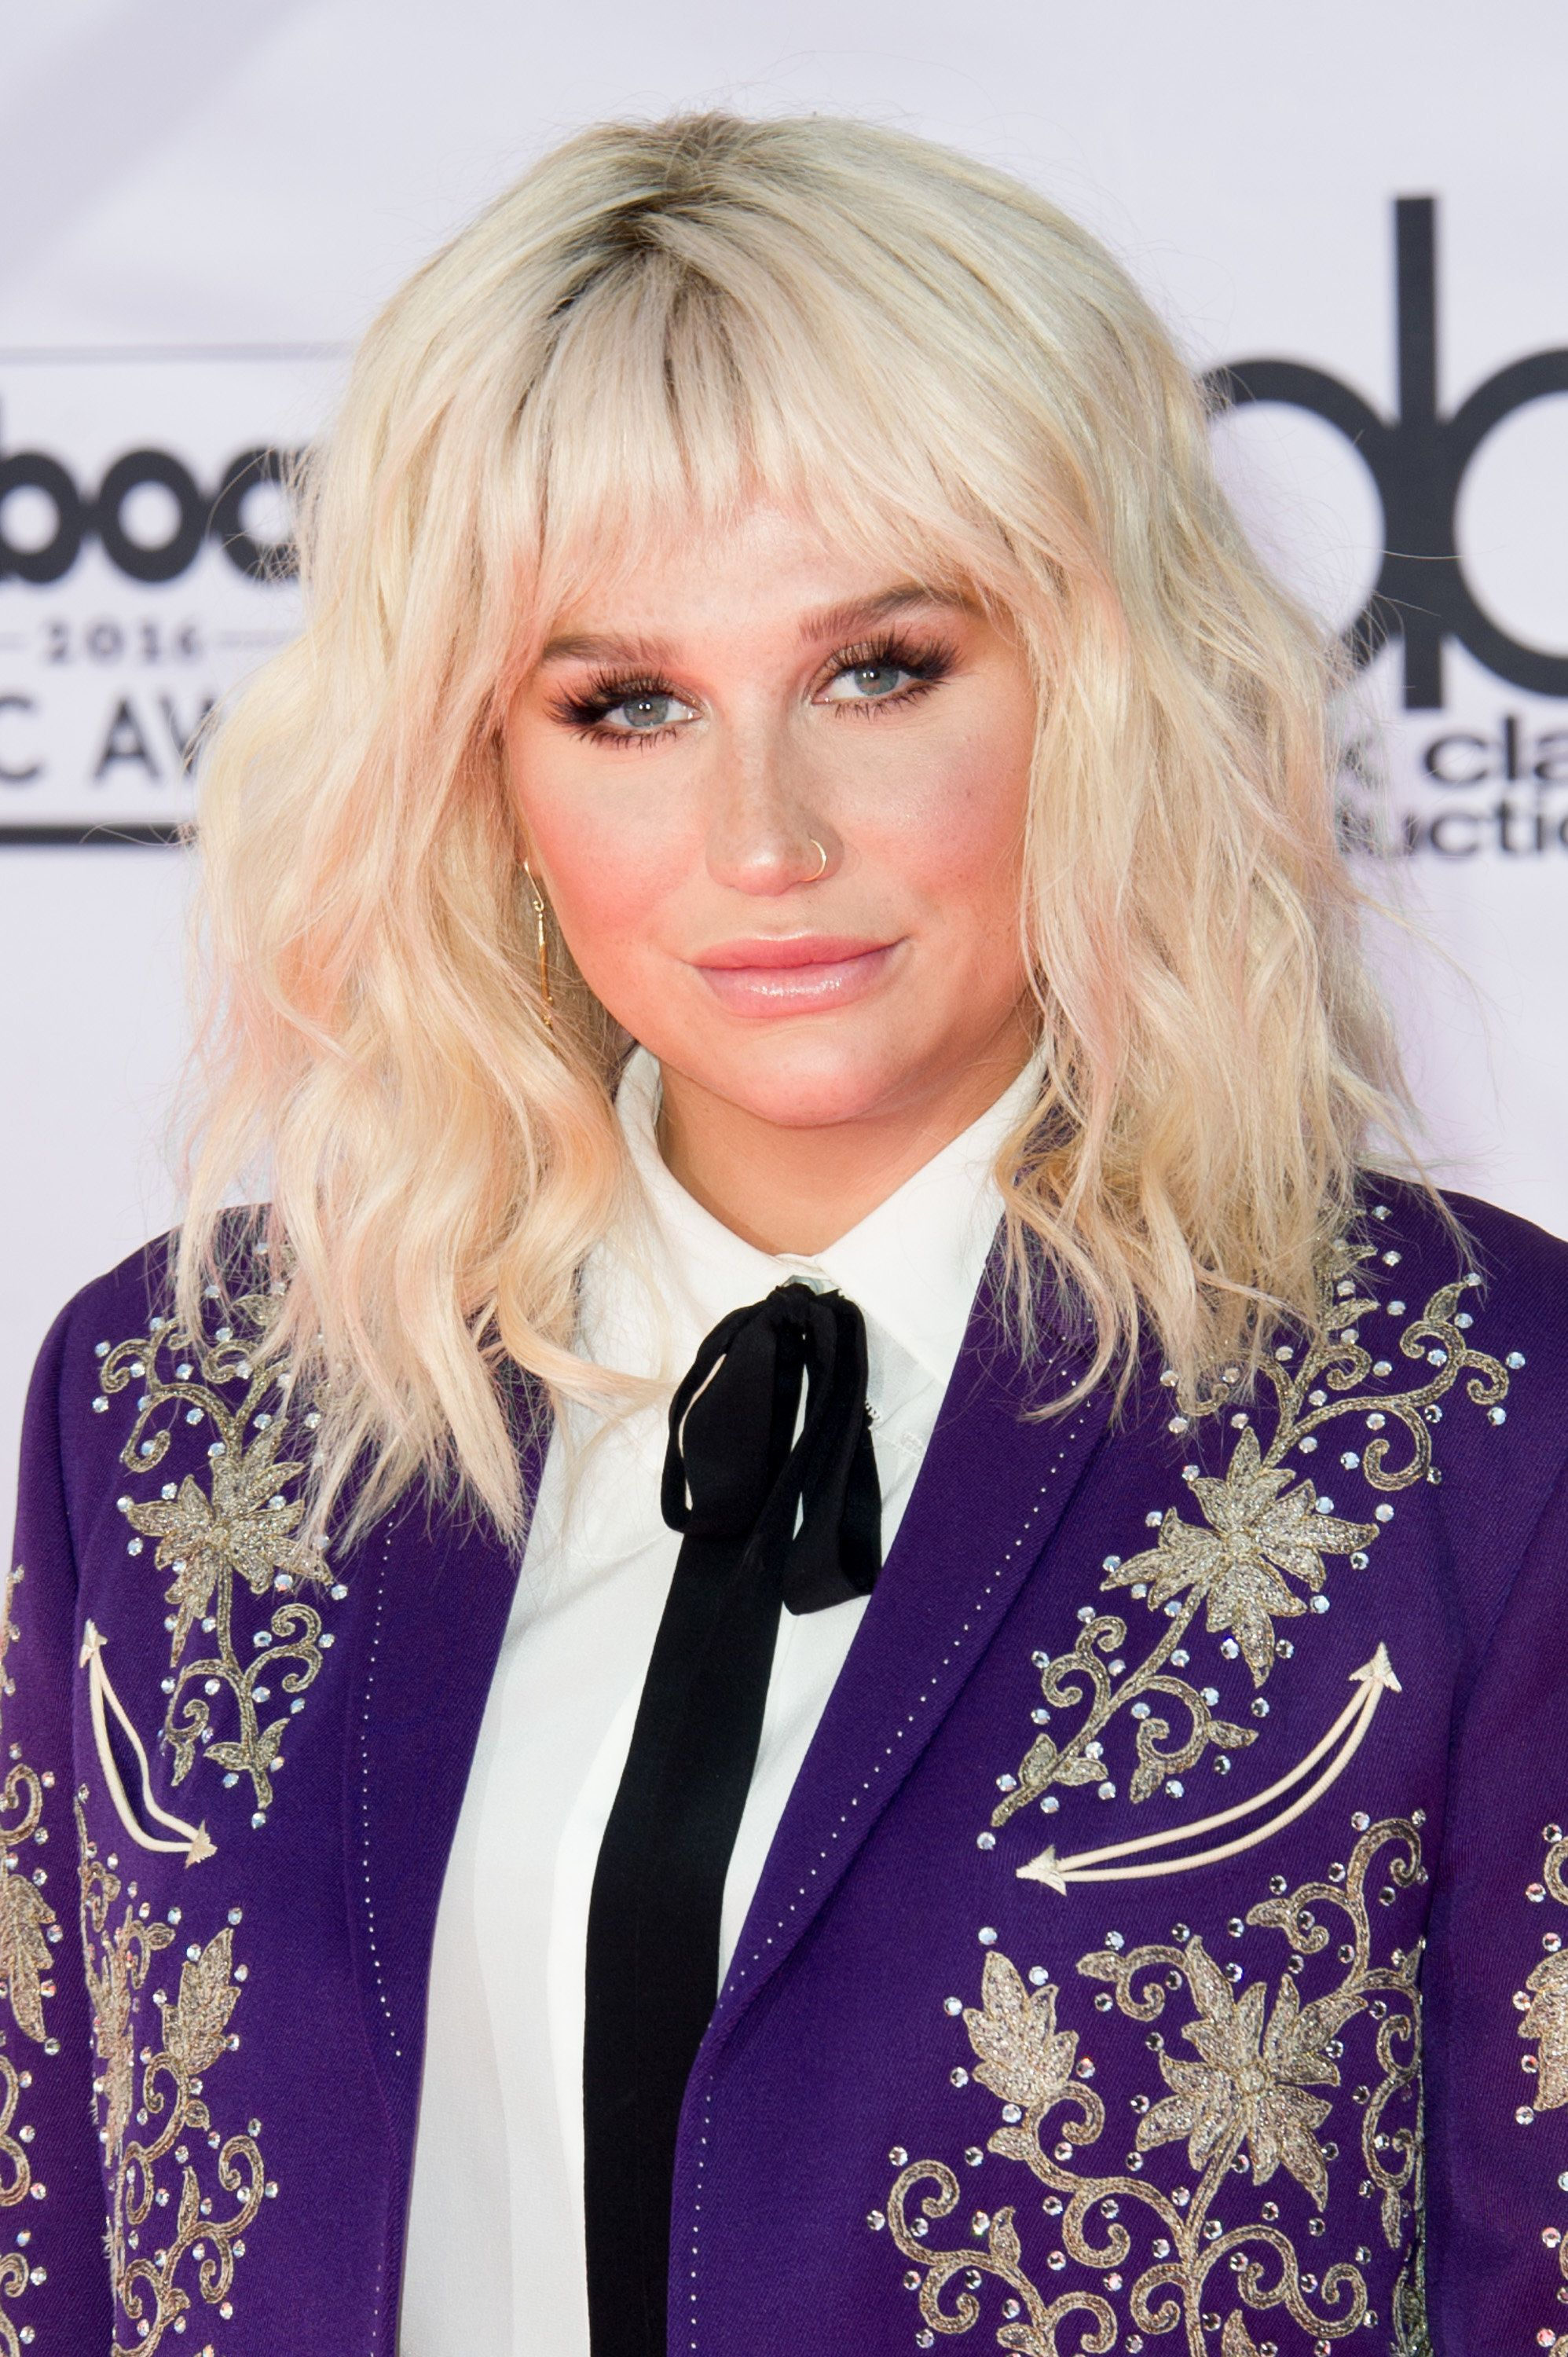 Kesha revealed she tried to kill herself when faced with the pressure to stay